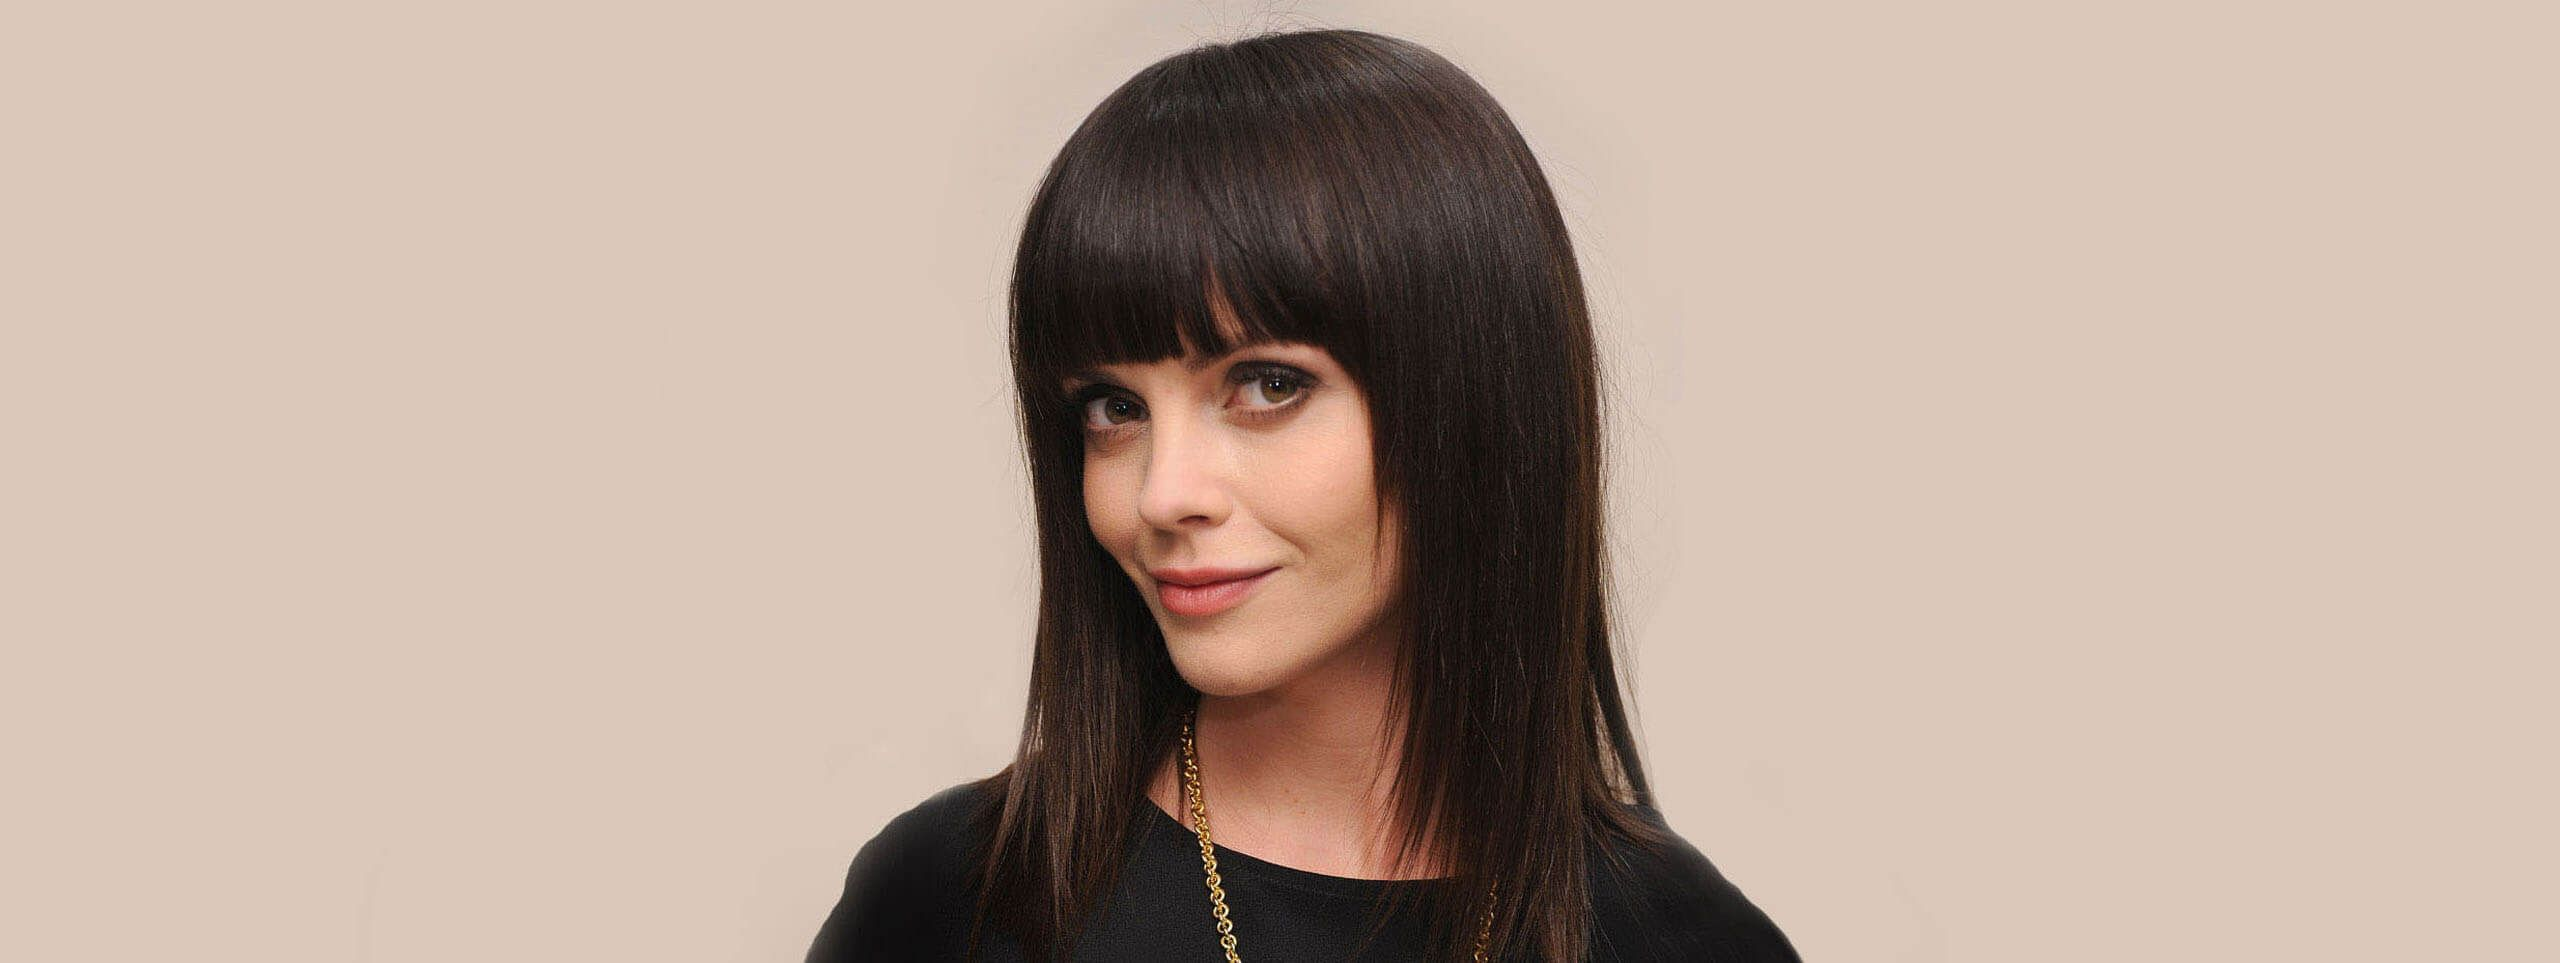 Woman with long, dark, straight hair and bangs, hairstyle trend for women